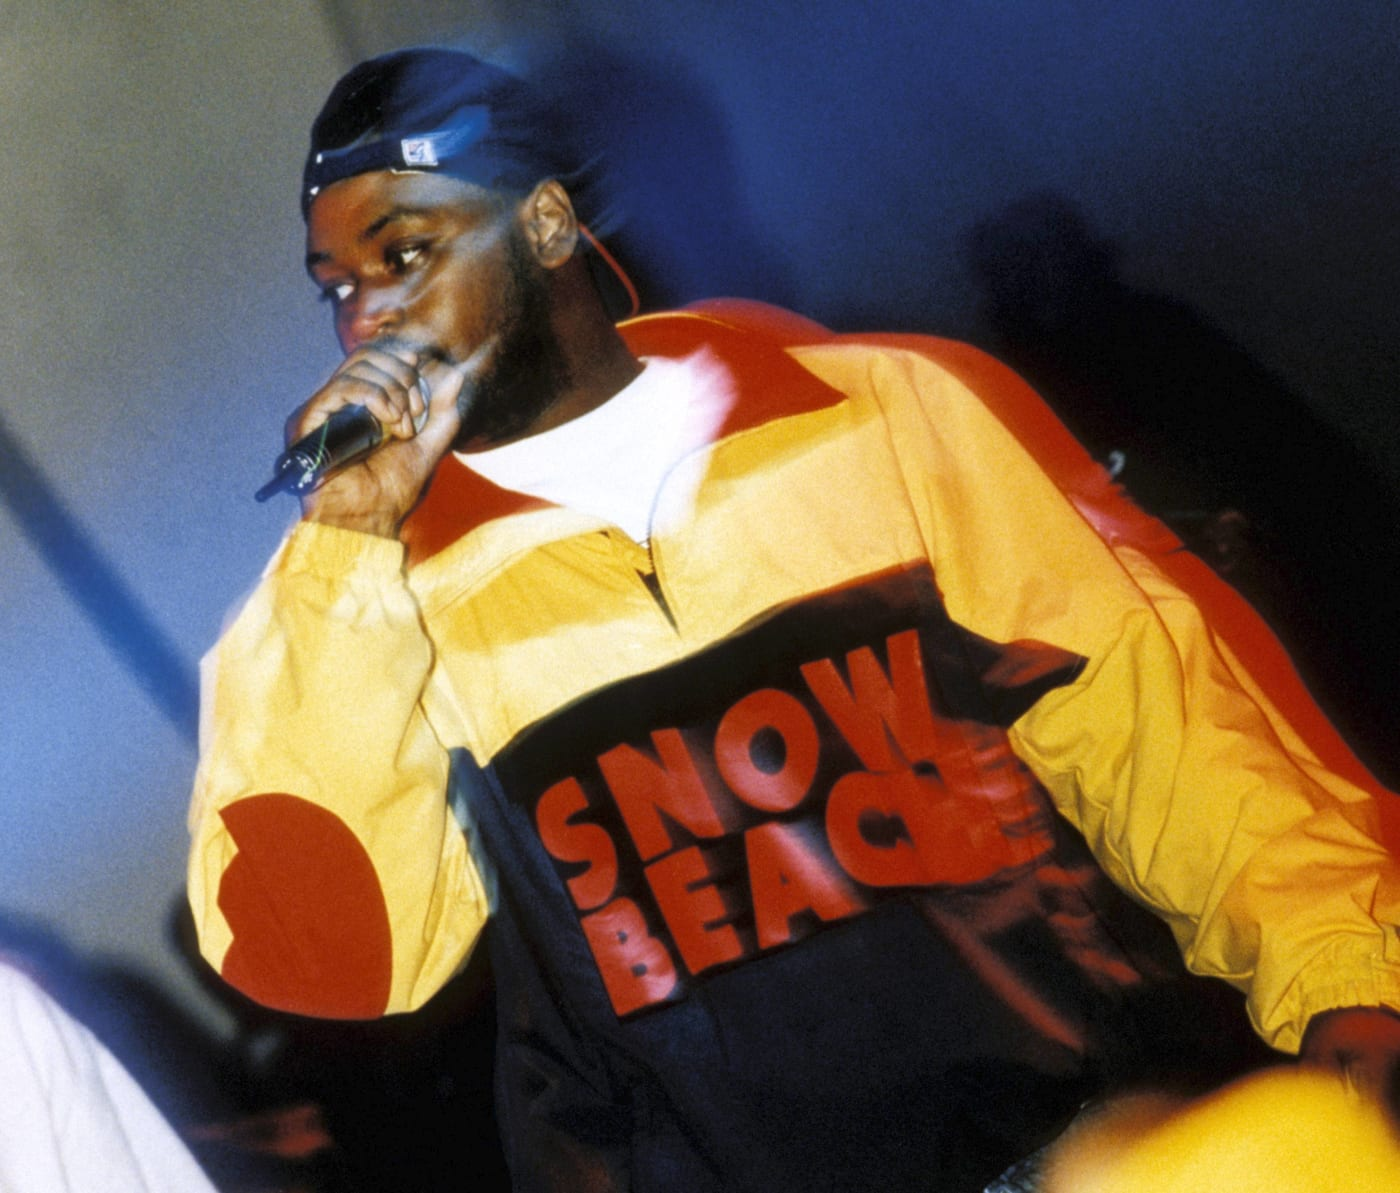 Ghostface Killah Of The Wu Tang Clan Wearing A Snow Beach Jacket